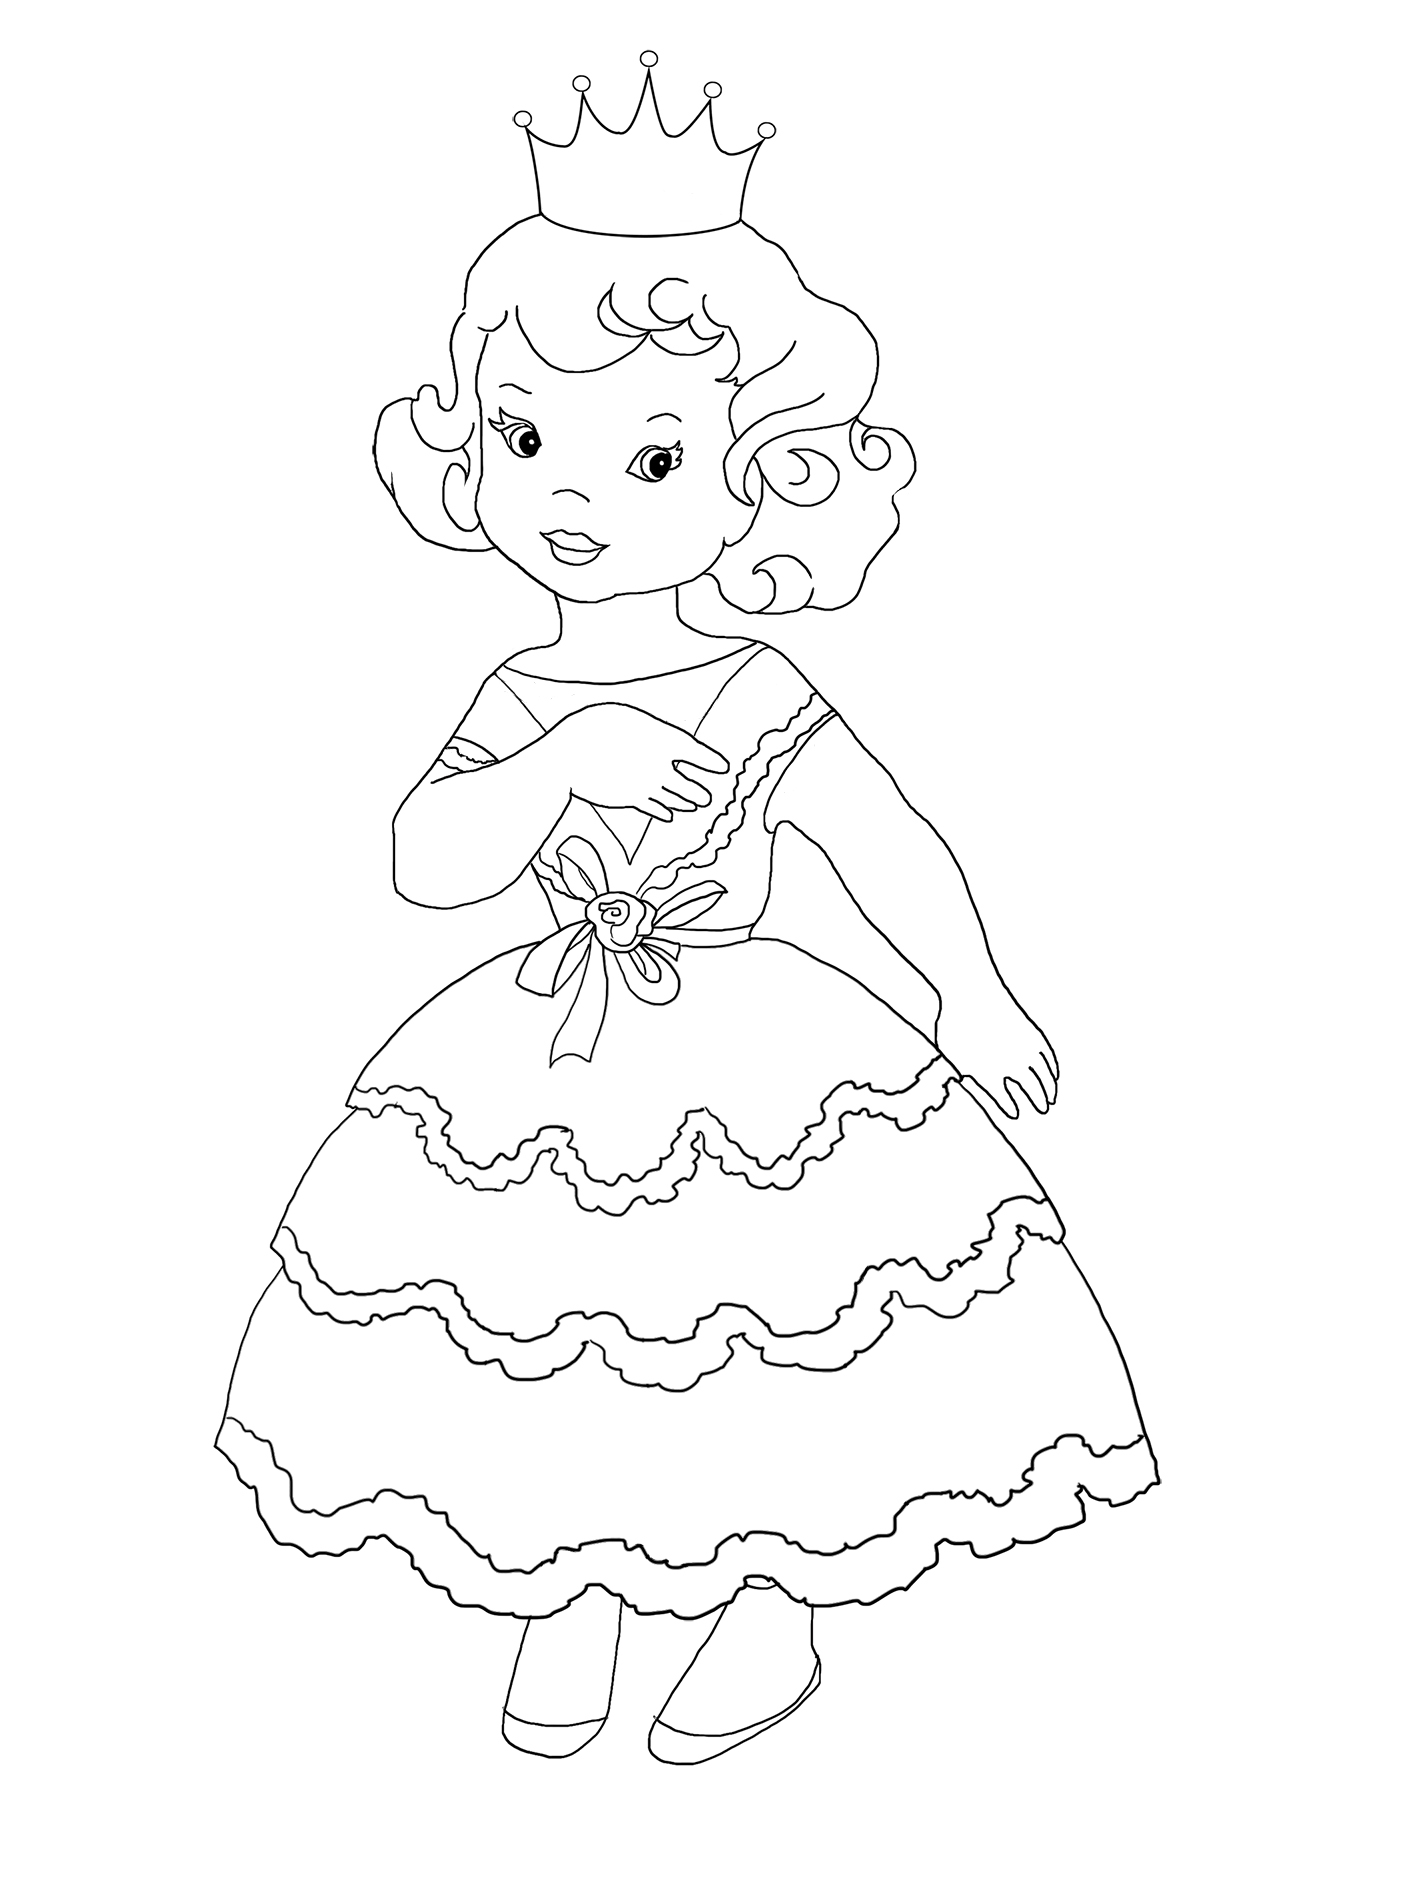 young princess coloring pages coloring page princess irene princess coloring young pages